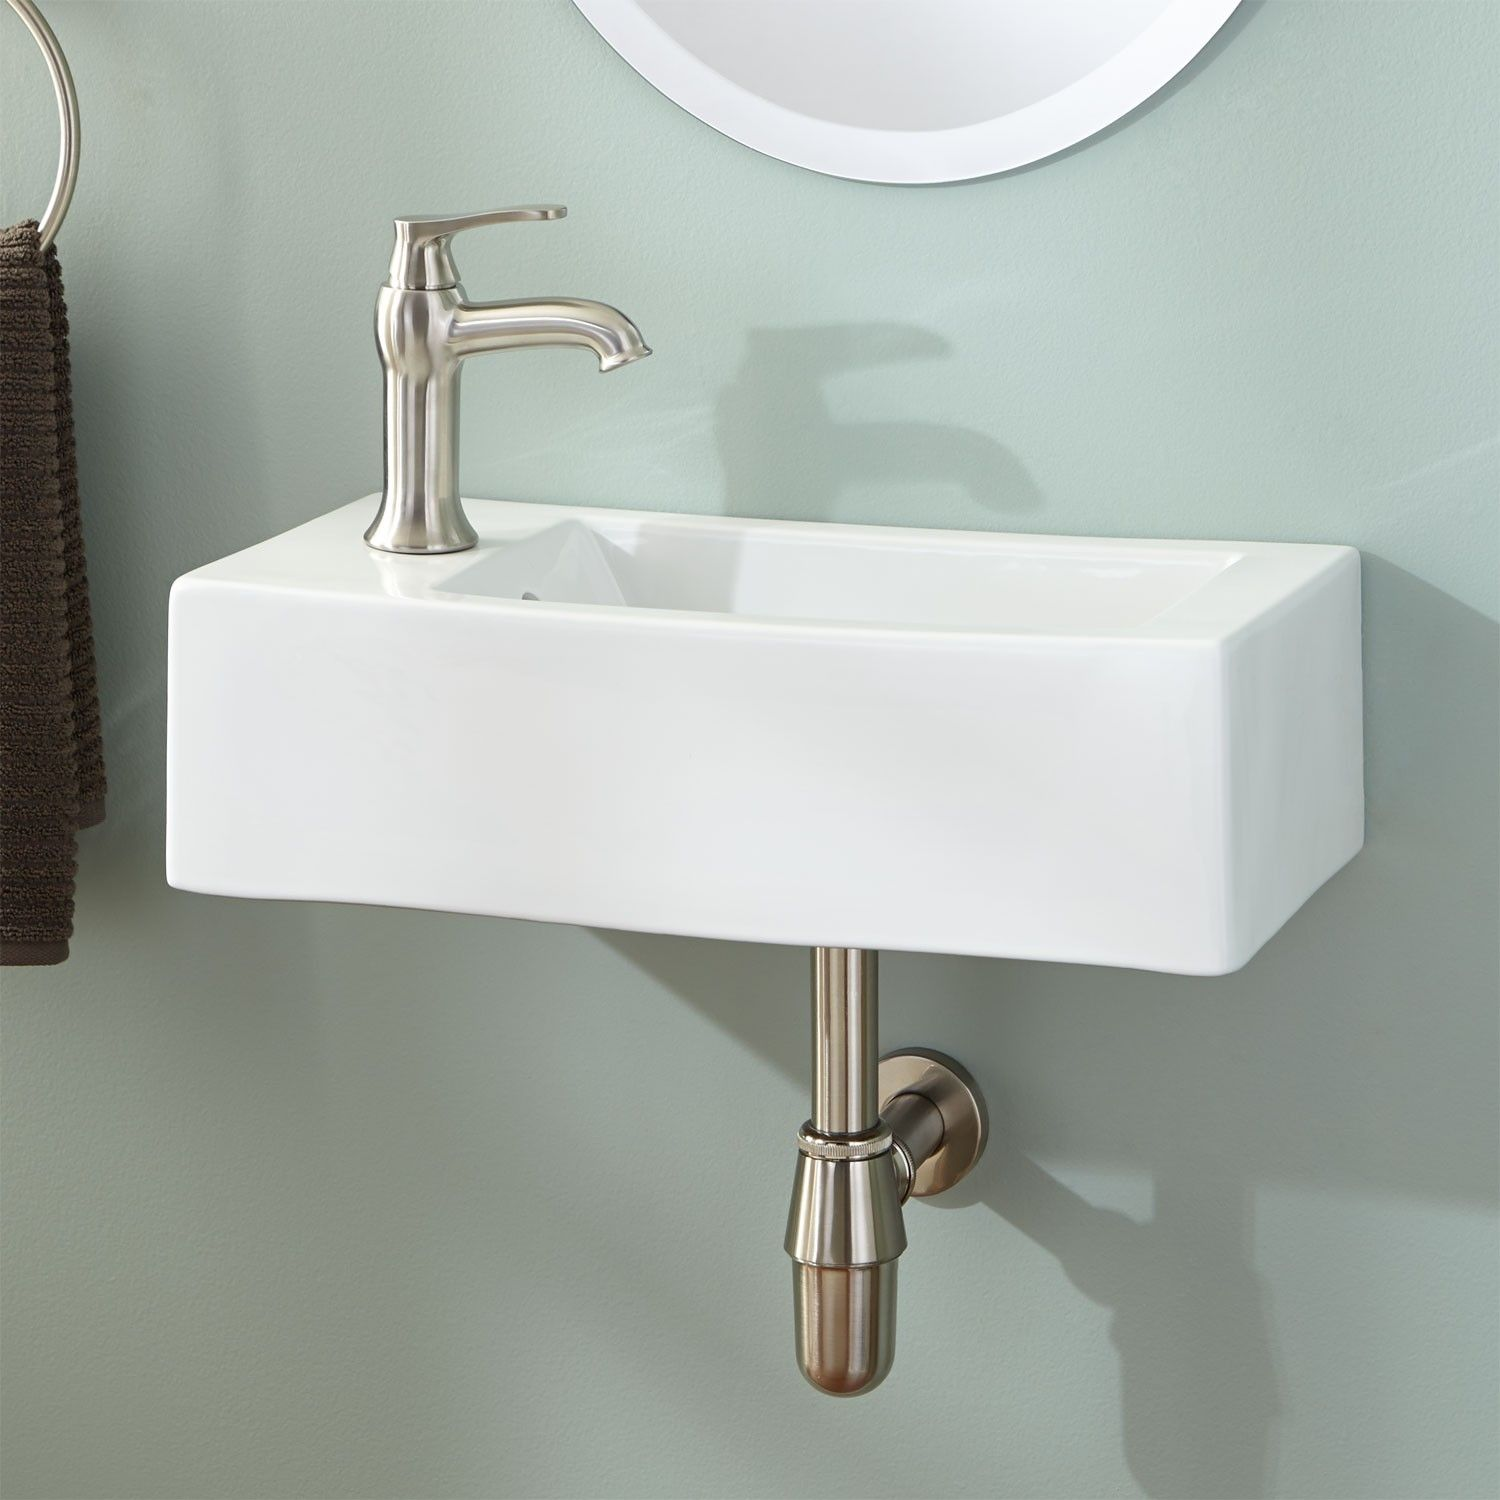 Choice for Half Bath Wall-Mount Sink $140. Can go left or ...